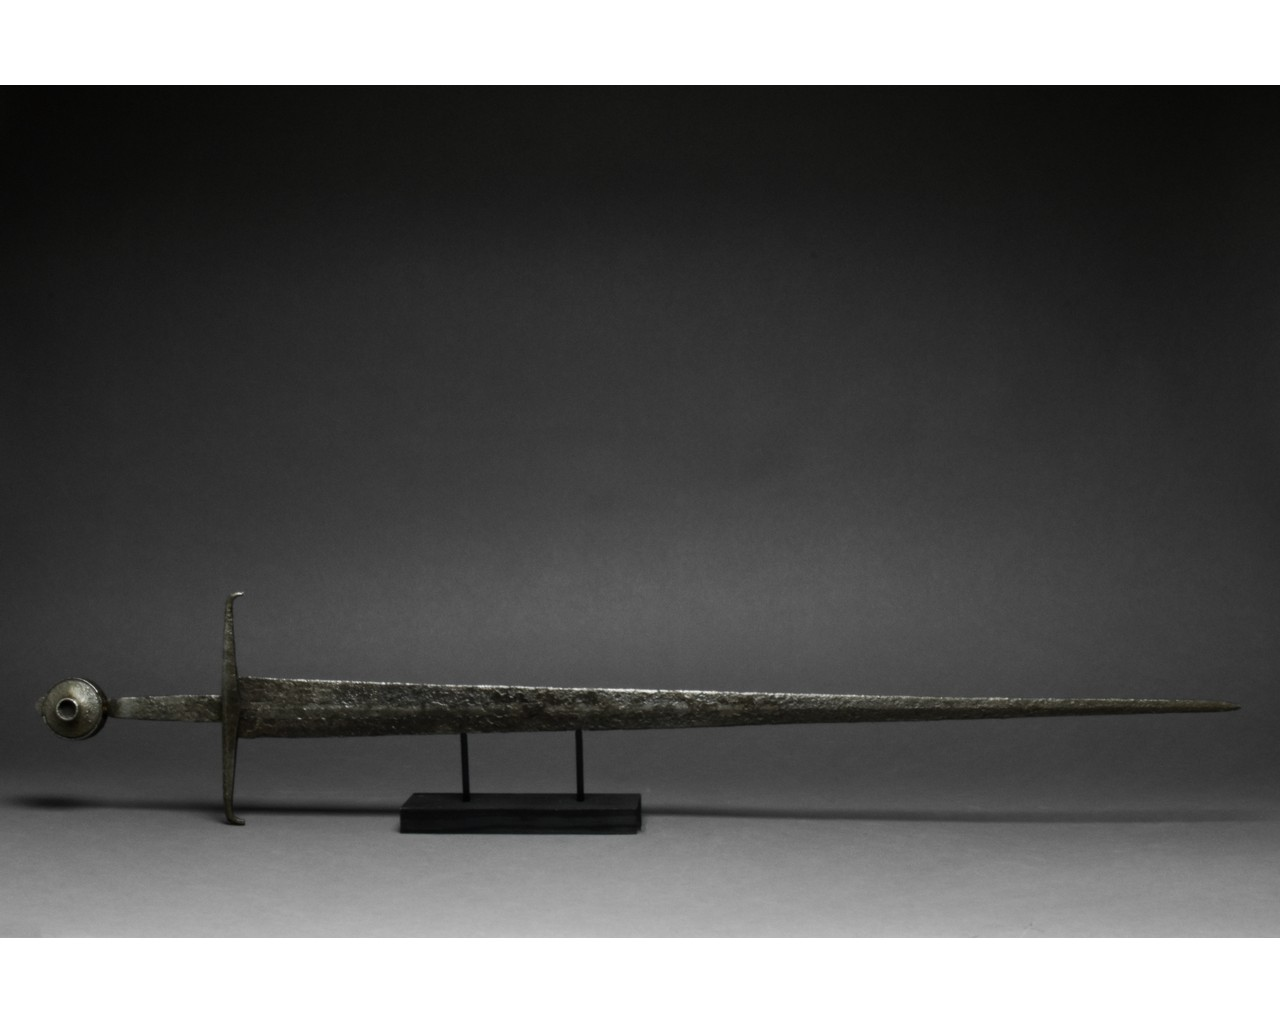 MEDIEVAL IRON SWORD WITH HANDLE - Image 2 of 9